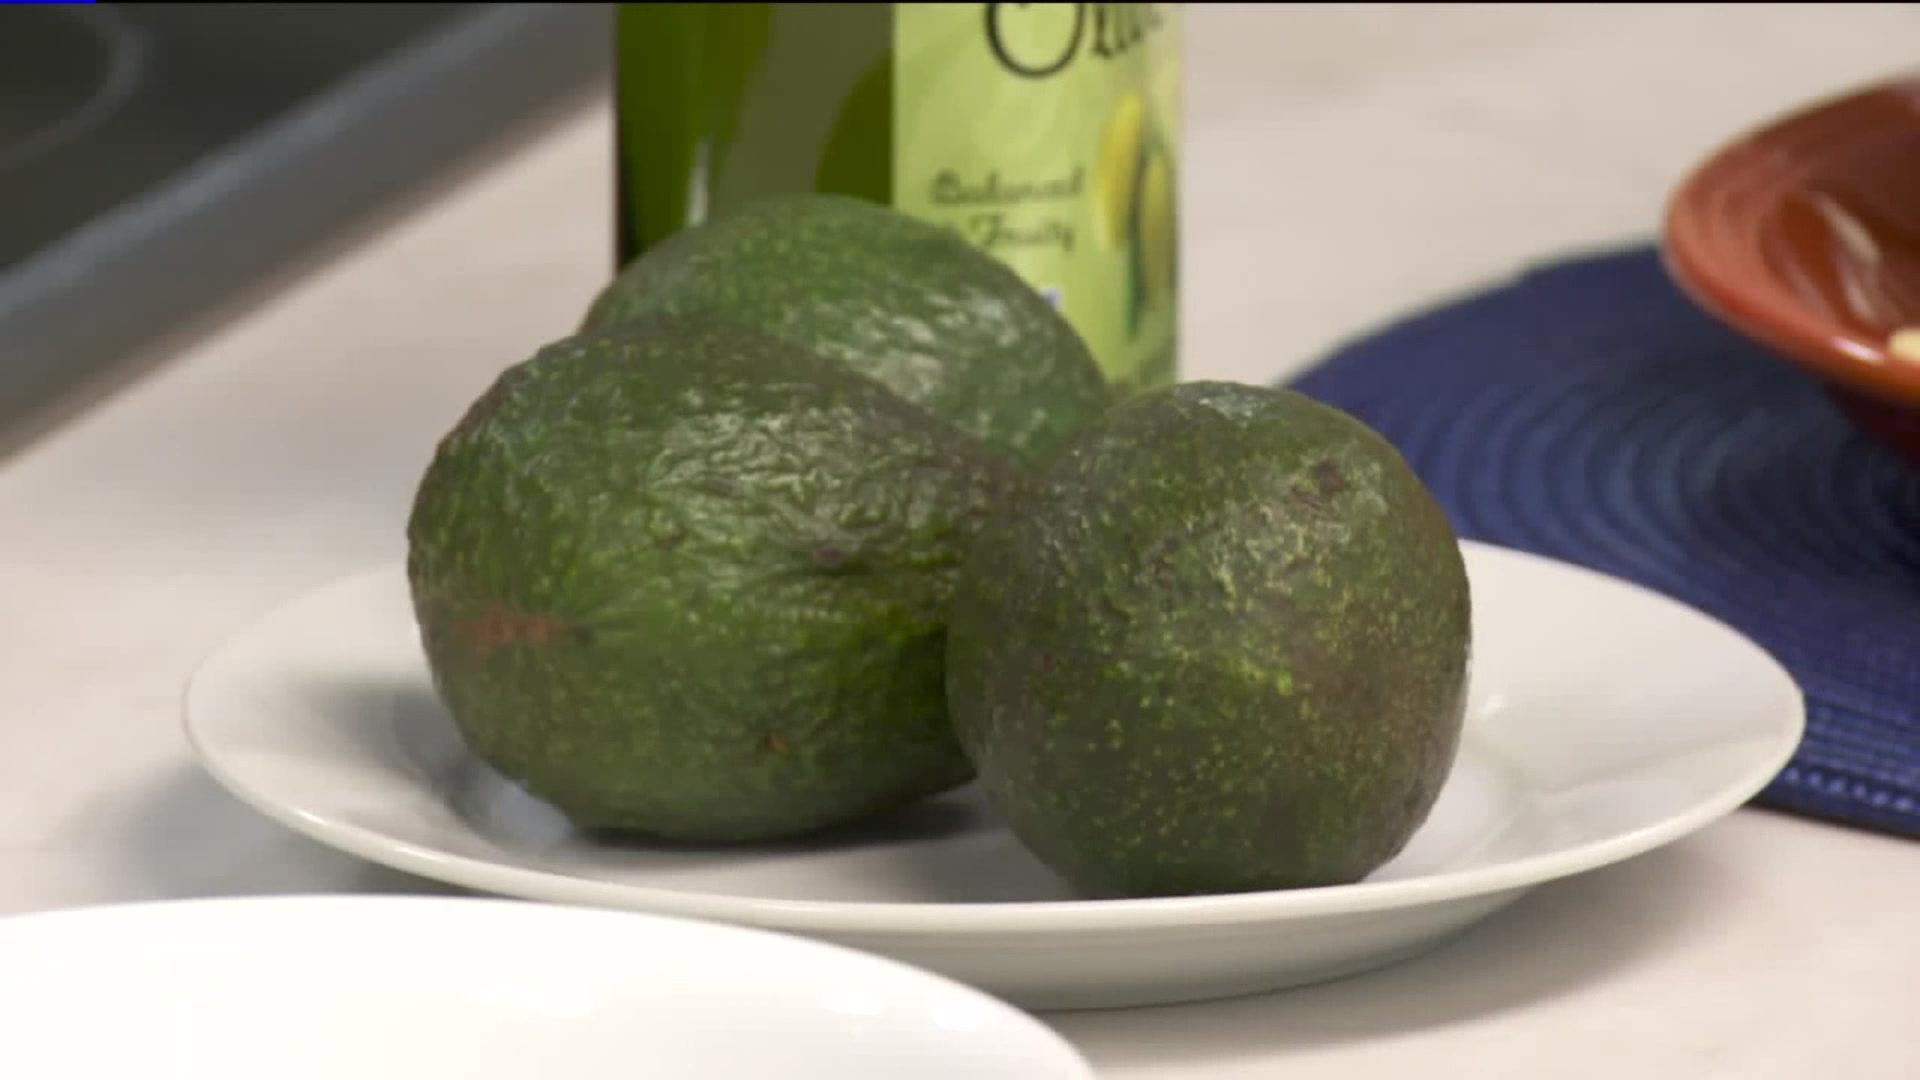 How to Make Guacamole With a Healthier Twist